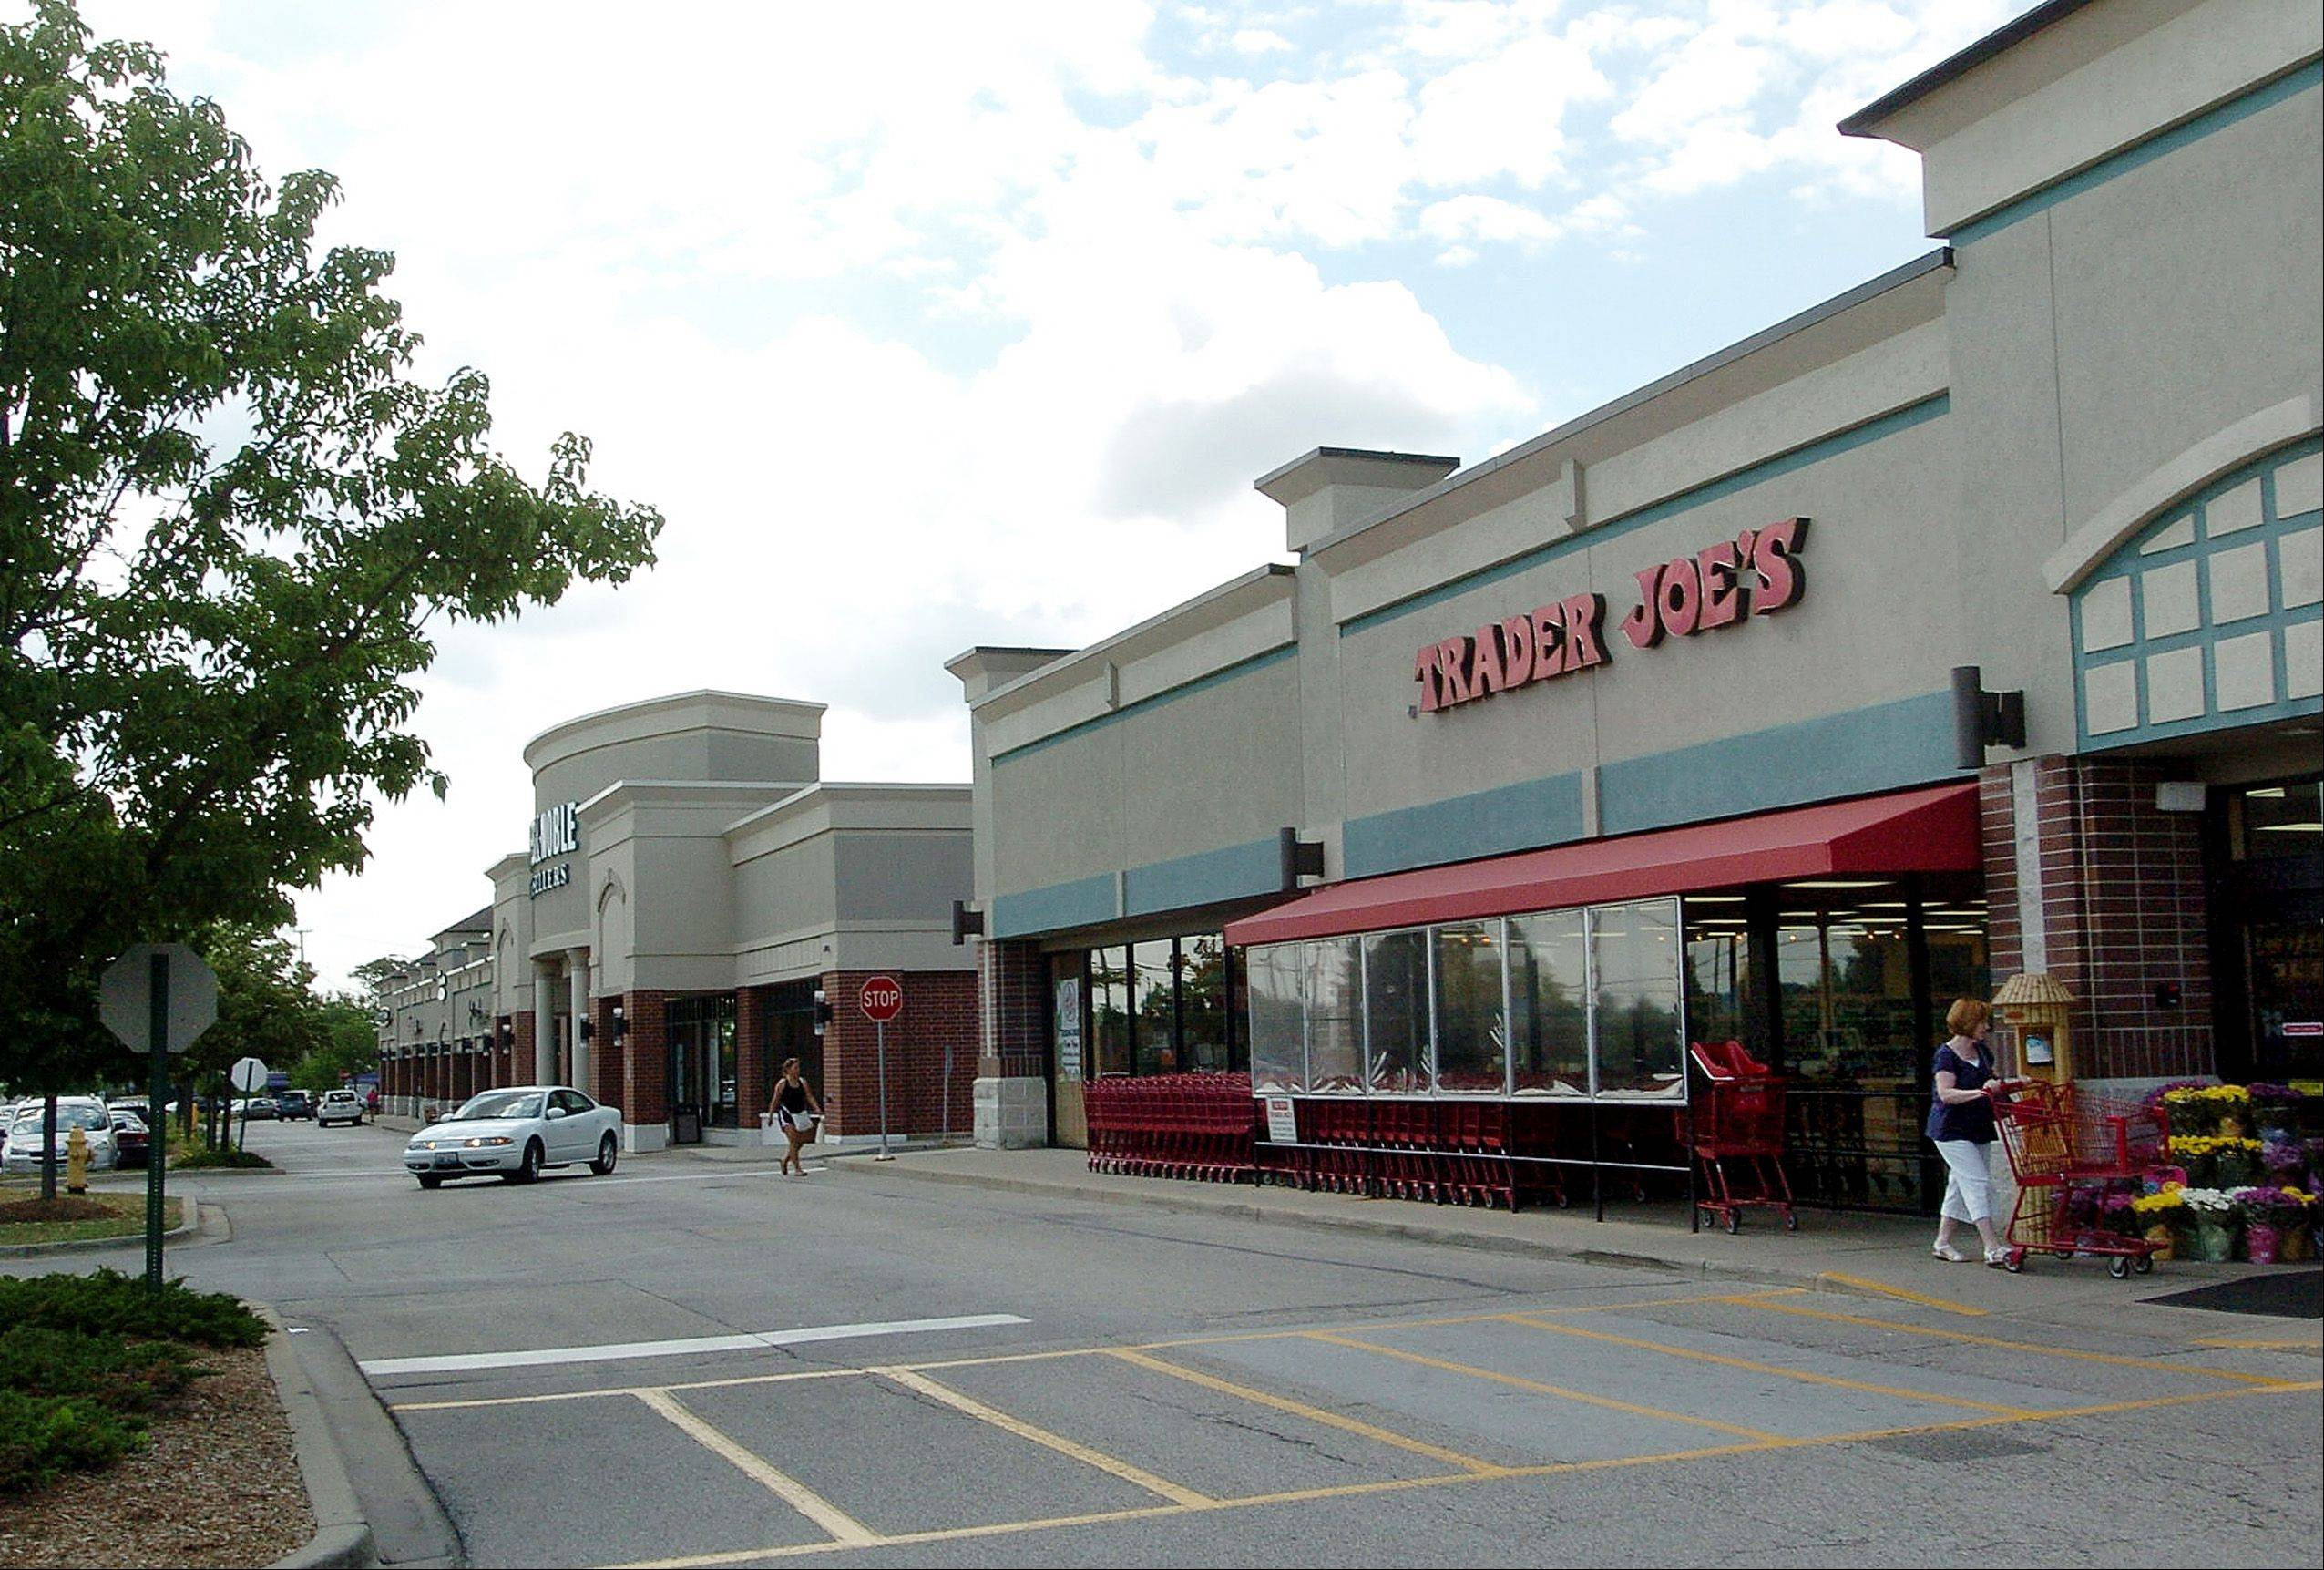 Trader Joe's, a neighborhood grocery store with foods and beverages ranging from the everyday to the exotic, announced it's coming to Schaumburg.